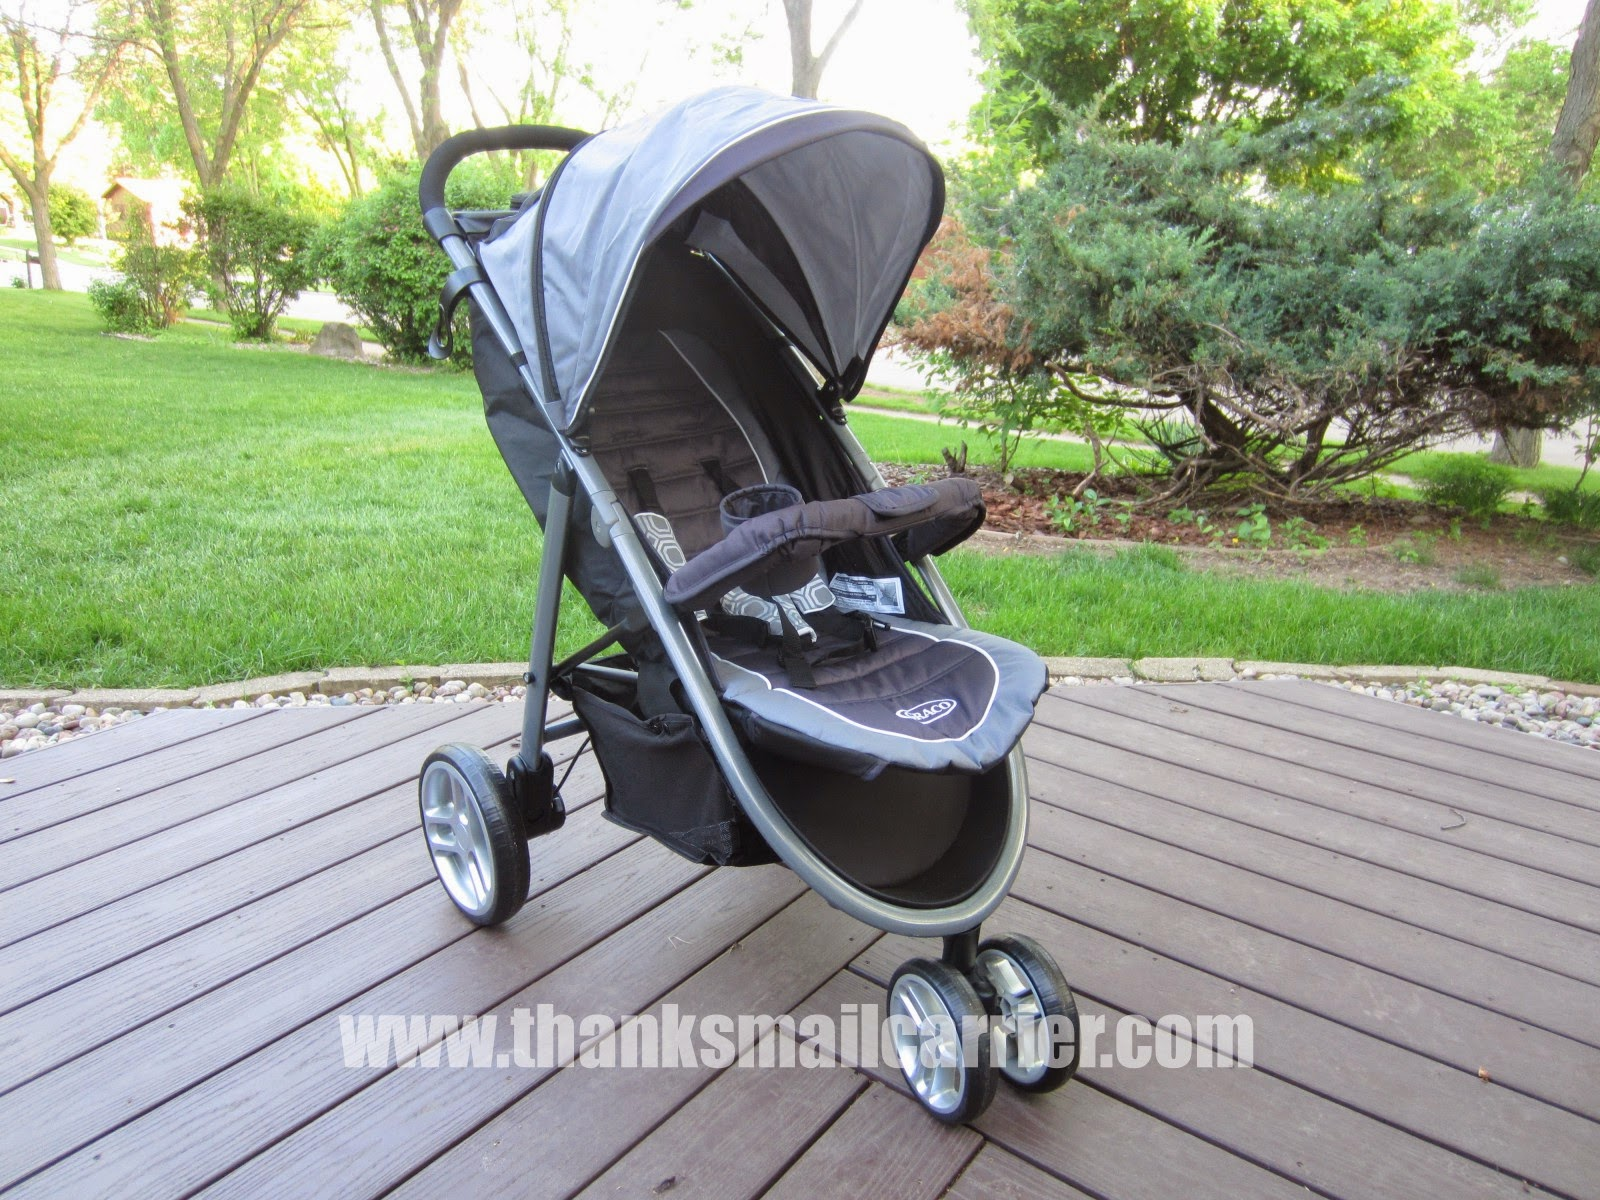 Graco Aire3 stroller review